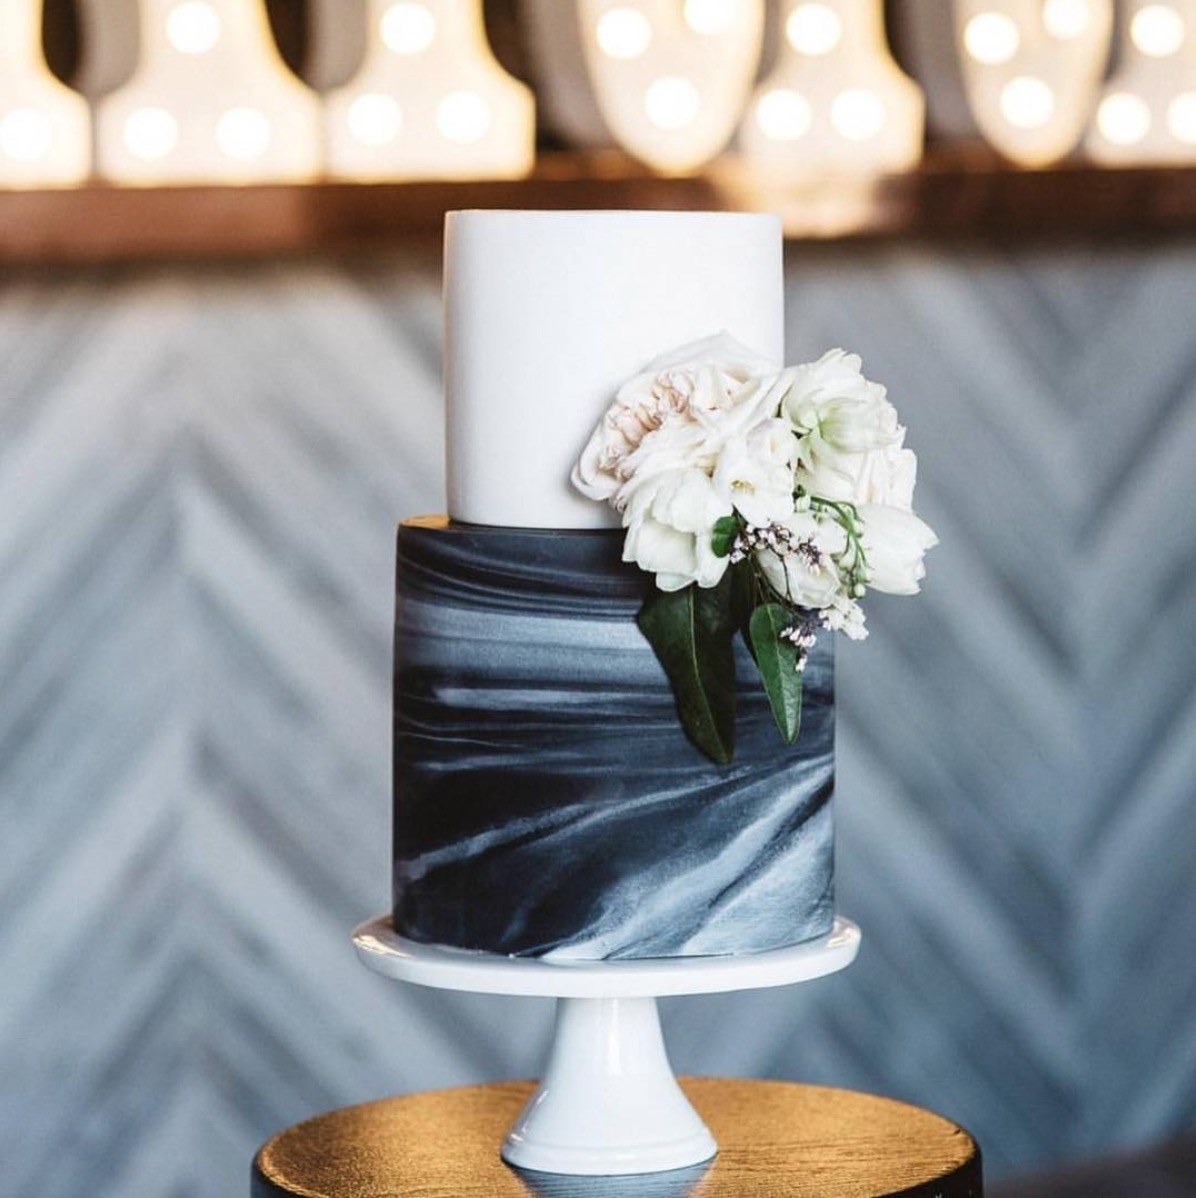 Chocolate cake with icing vol 6 - 3 8